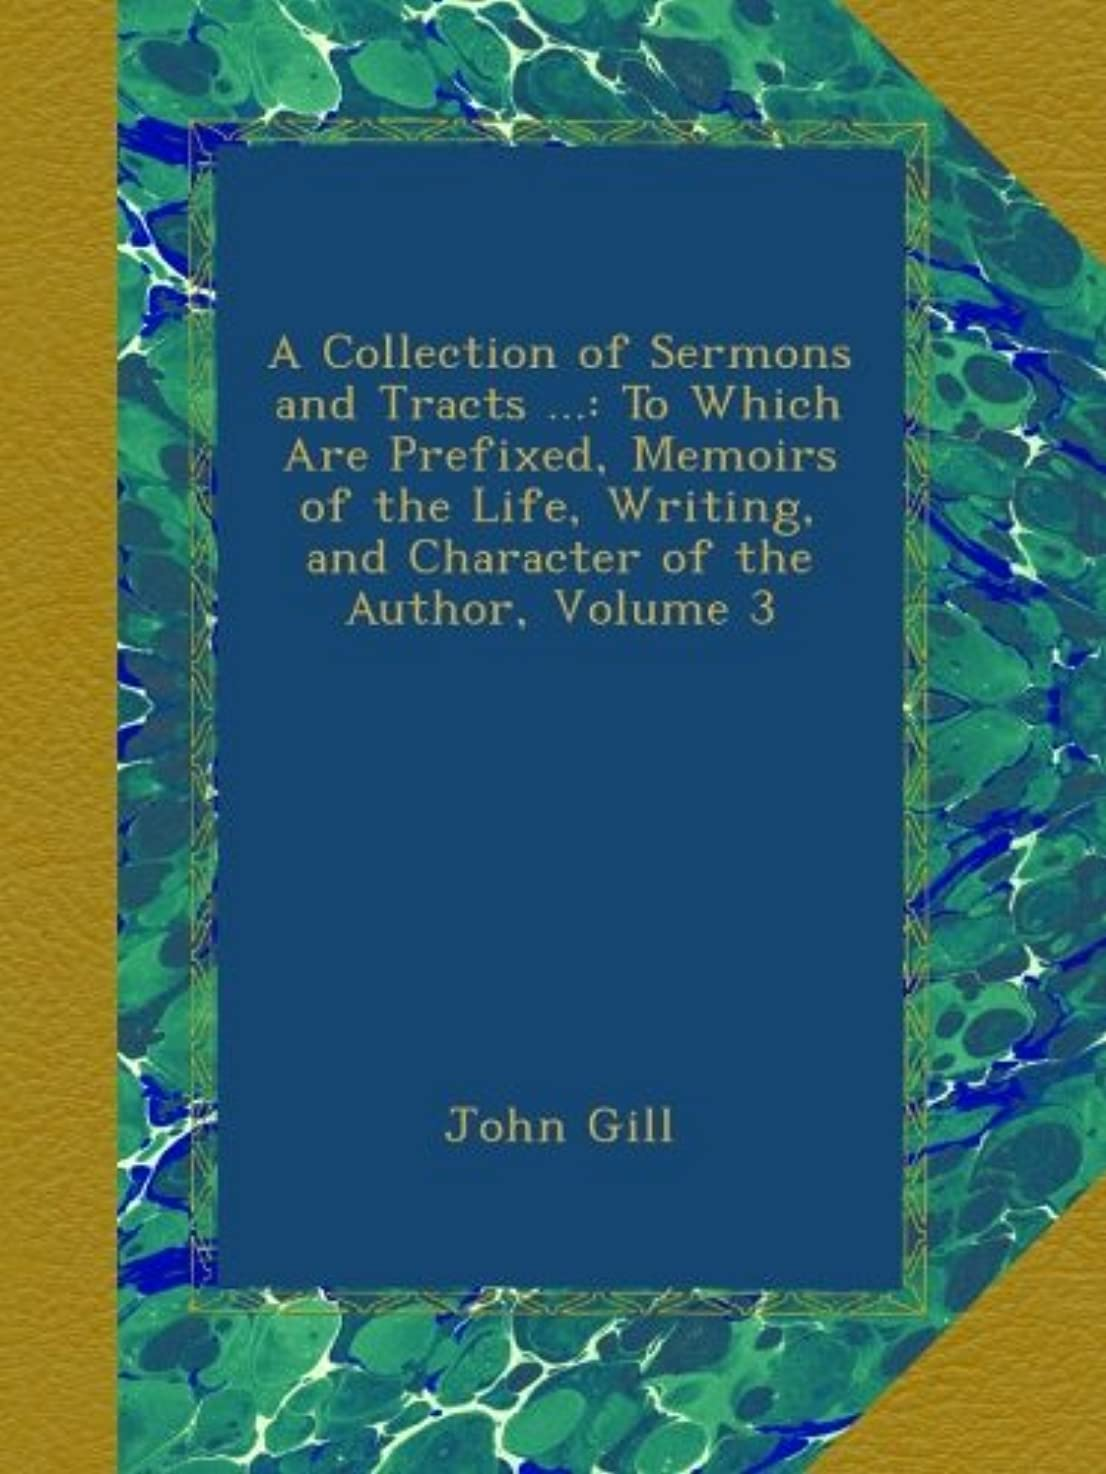 占めるペルソナスタンドA Collection of Sermons and Tracts ...: To Which Are Prefixed, Memoirs of the Life, Writing, and Character of the Author, Volume 3